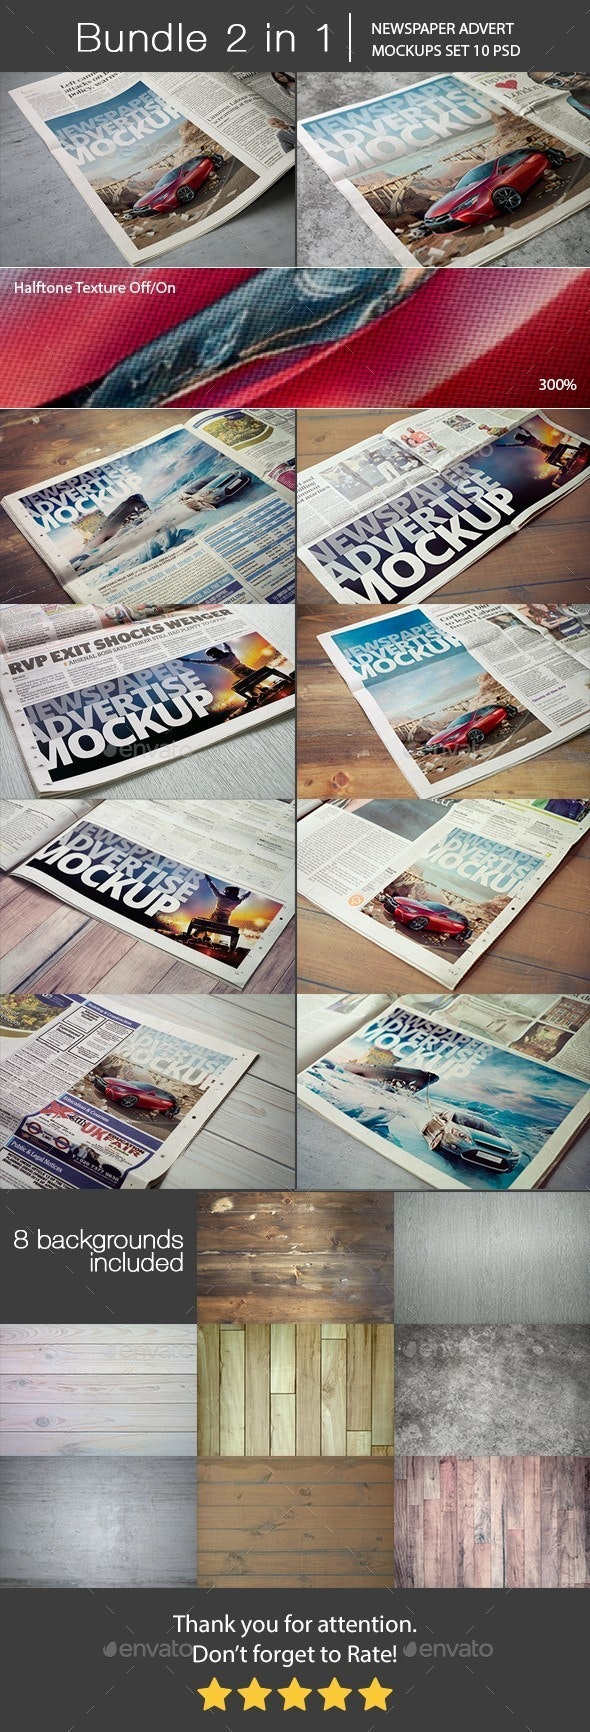 Newspaper Advert Mockups Bundle 2 in 1 - Miscellaneous Print